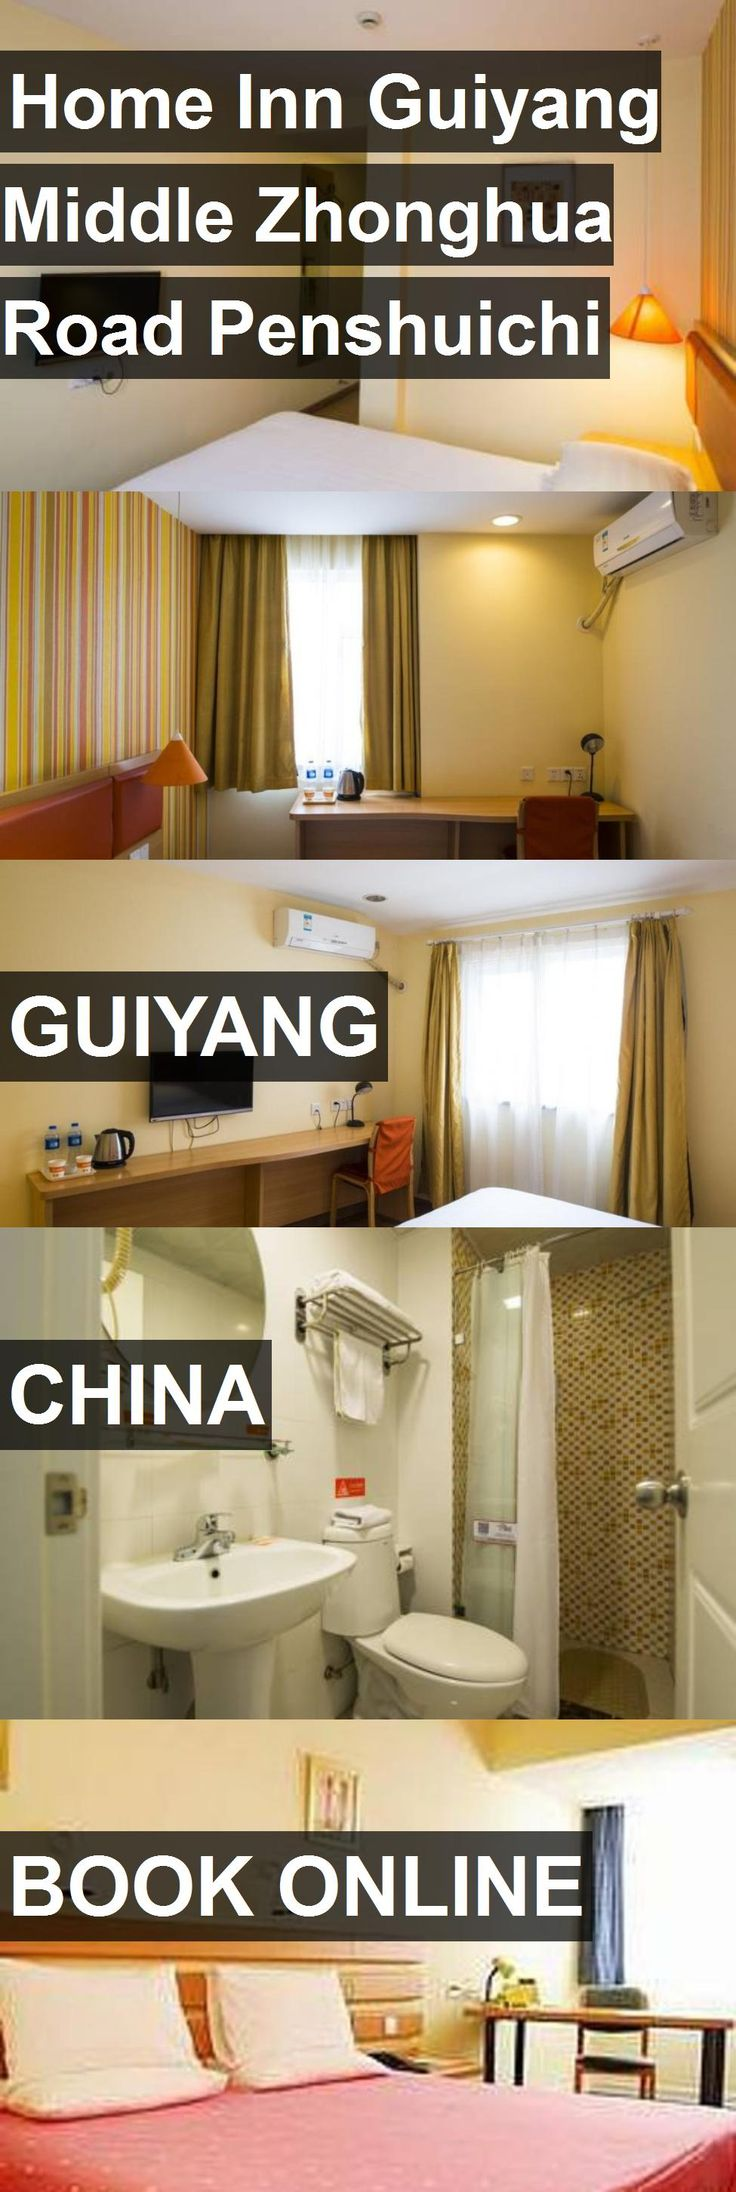 Hotel Home Inn Guiyang Middle Zhonghua Road Penshuichi in Guiyang, China. For more information, photos, reviews and best prices please follow the link. #China #Guiyang #travel #vacation #hotel